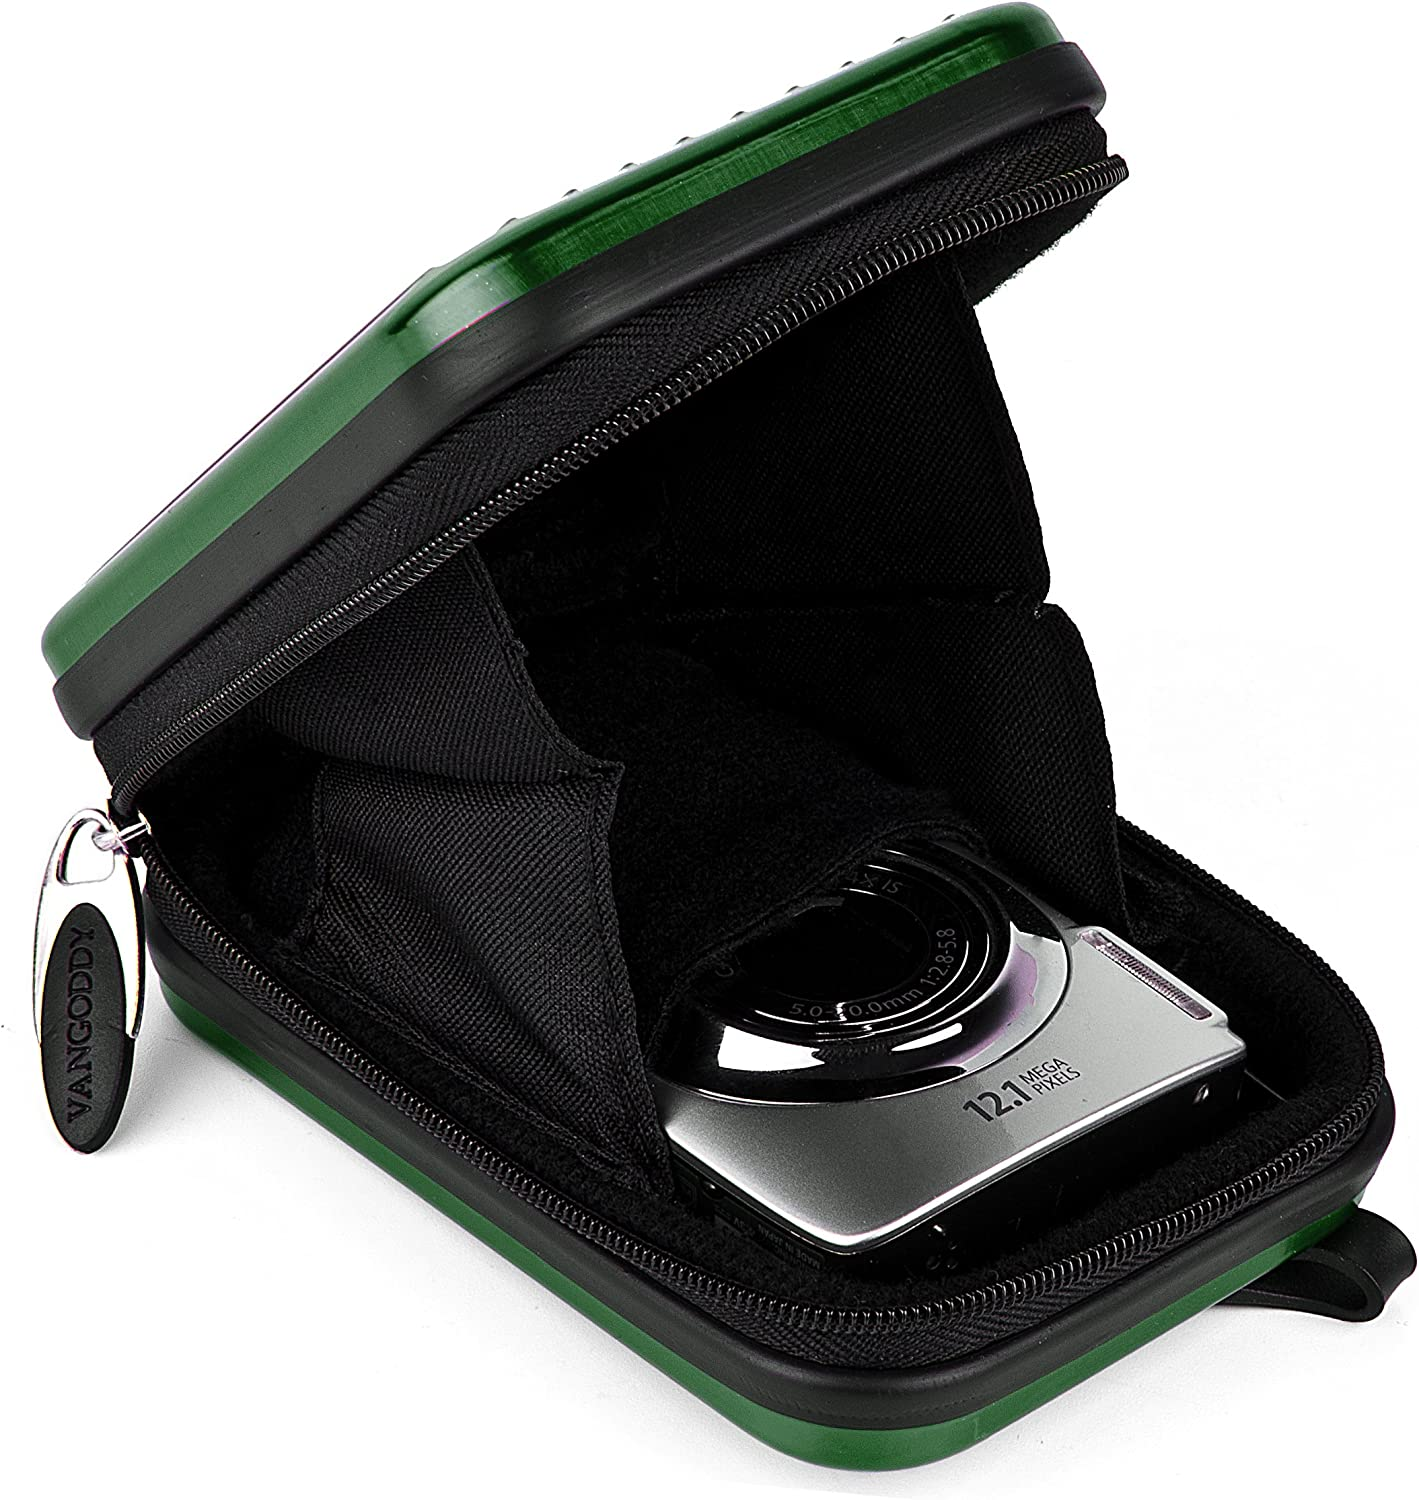 VanGoddy Pascal Mettalic Metal Case for Sony Cyber Shot DSC HX90V Digital Cameras and Screen Protector Green